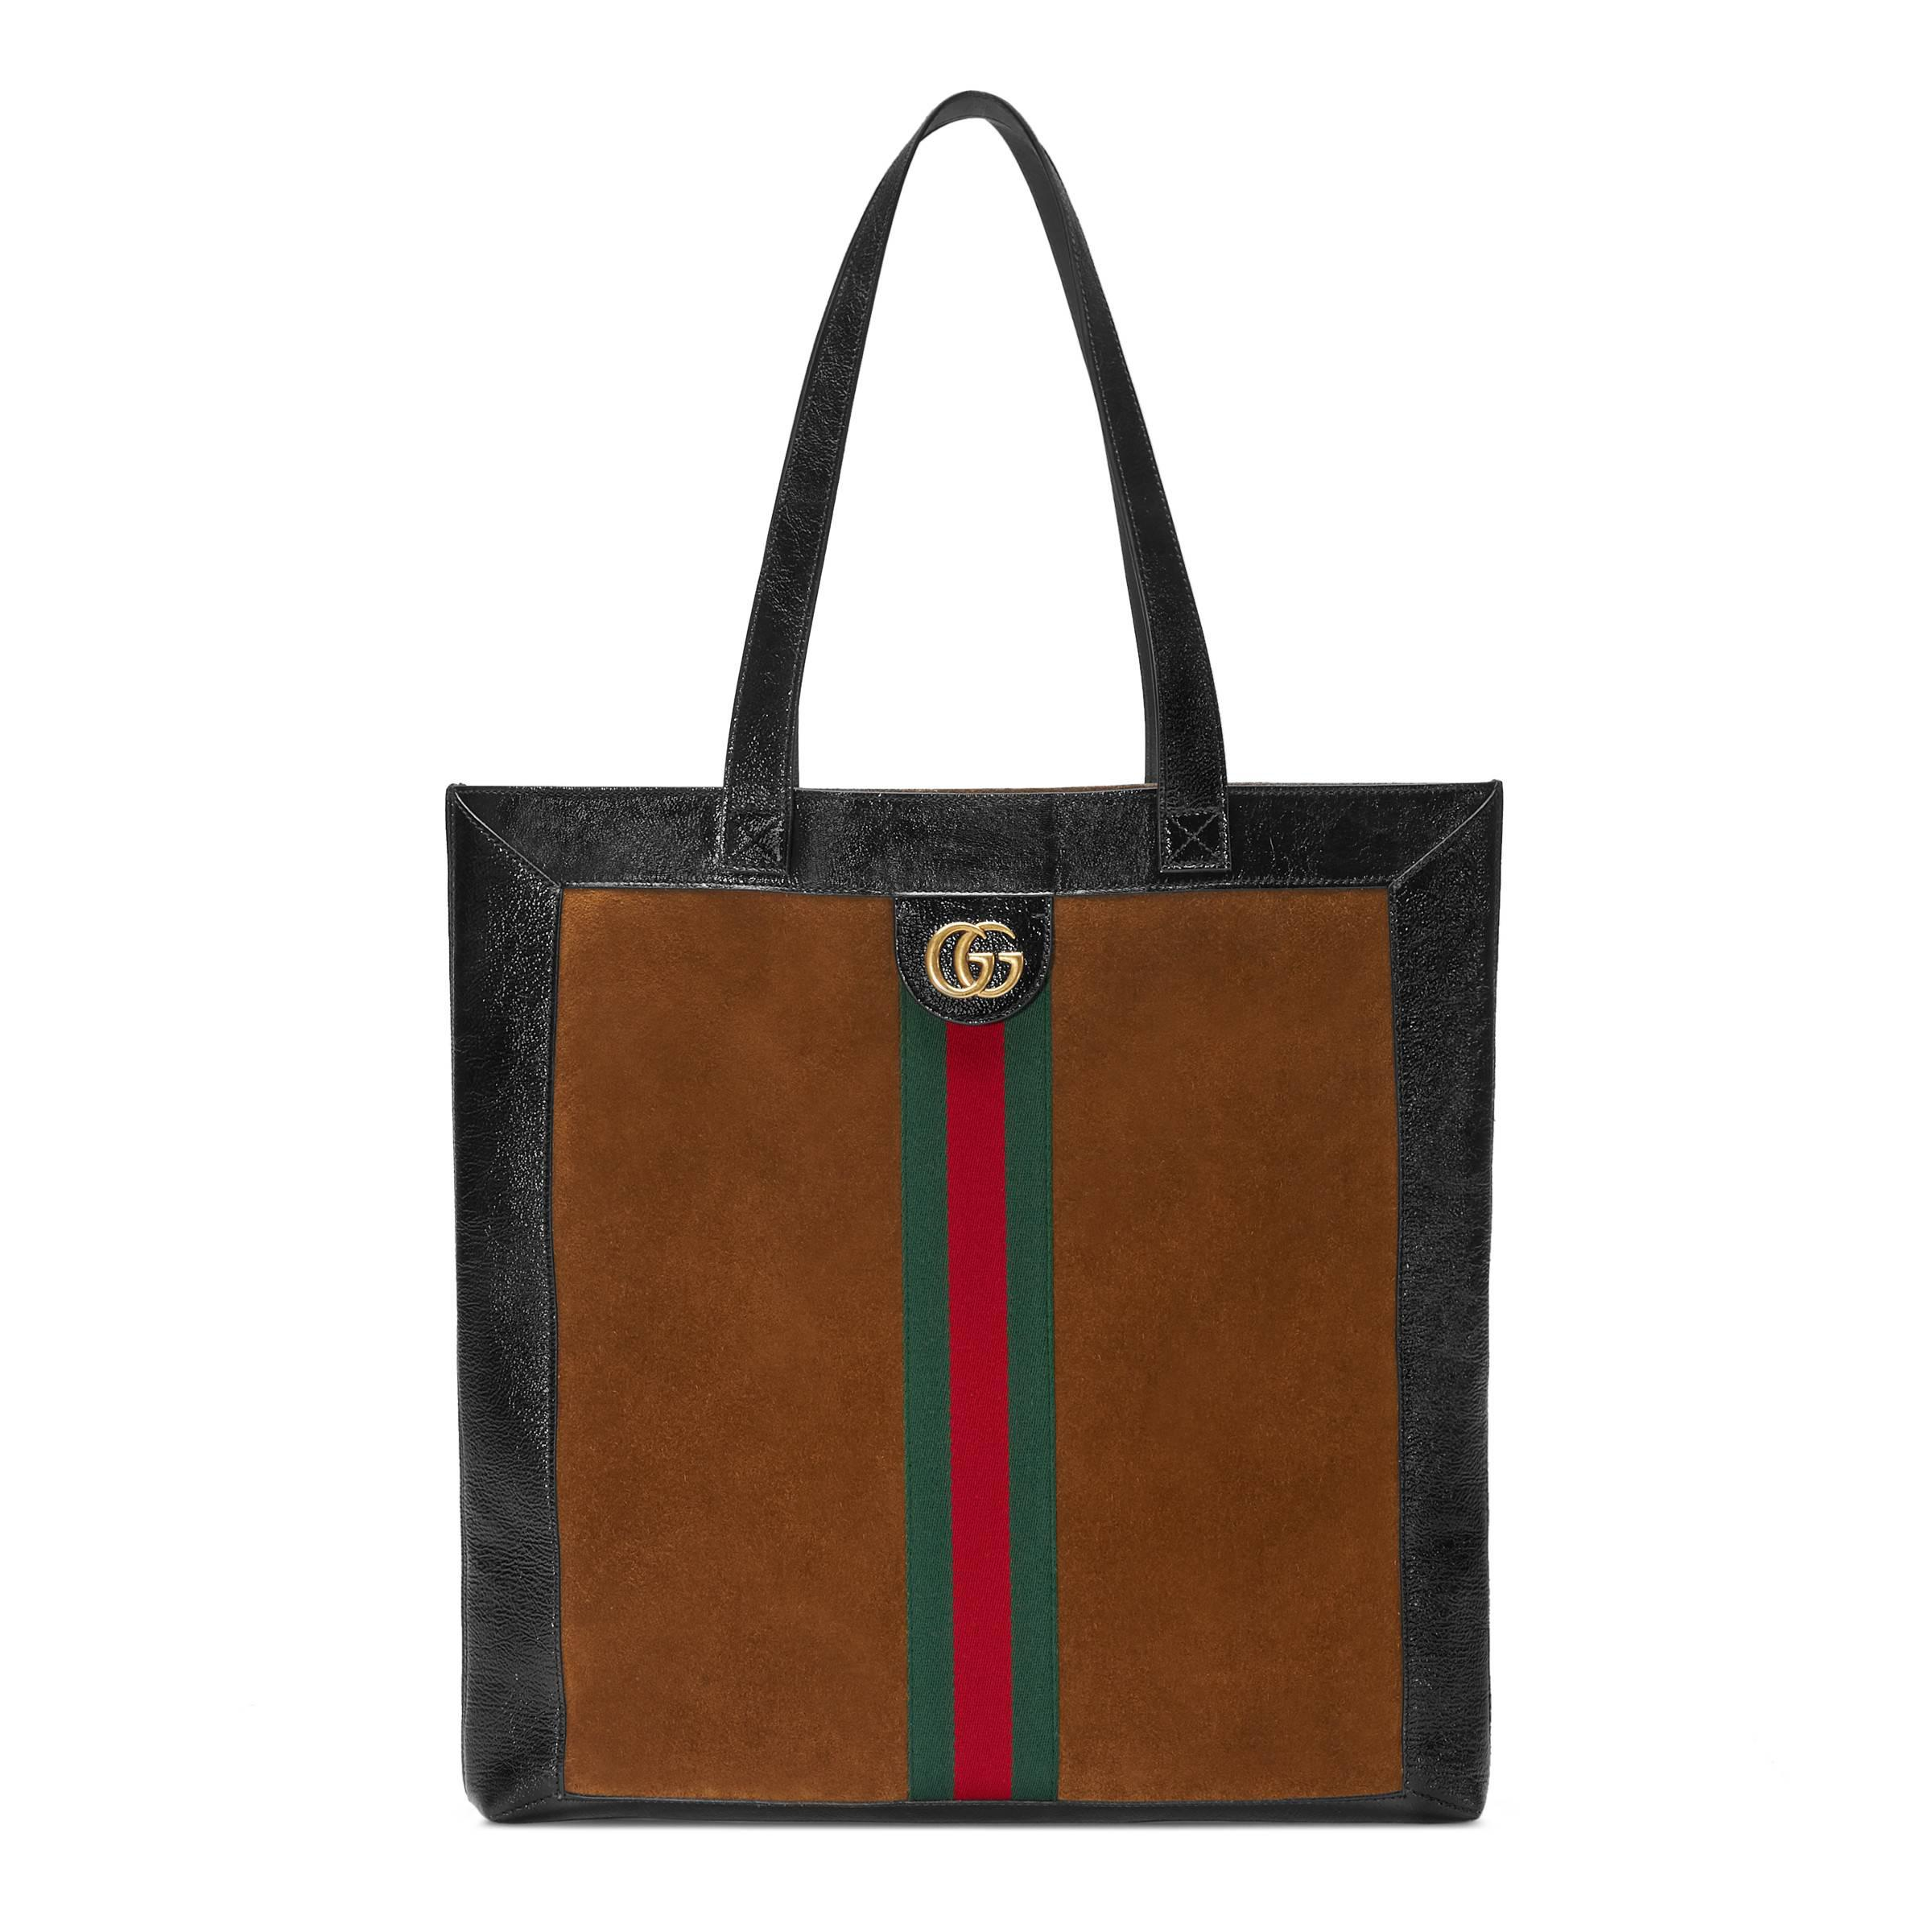 7aab0c384773 Gucci Ophidia Suede Large Tote in Brown - Save 24% - Lyst